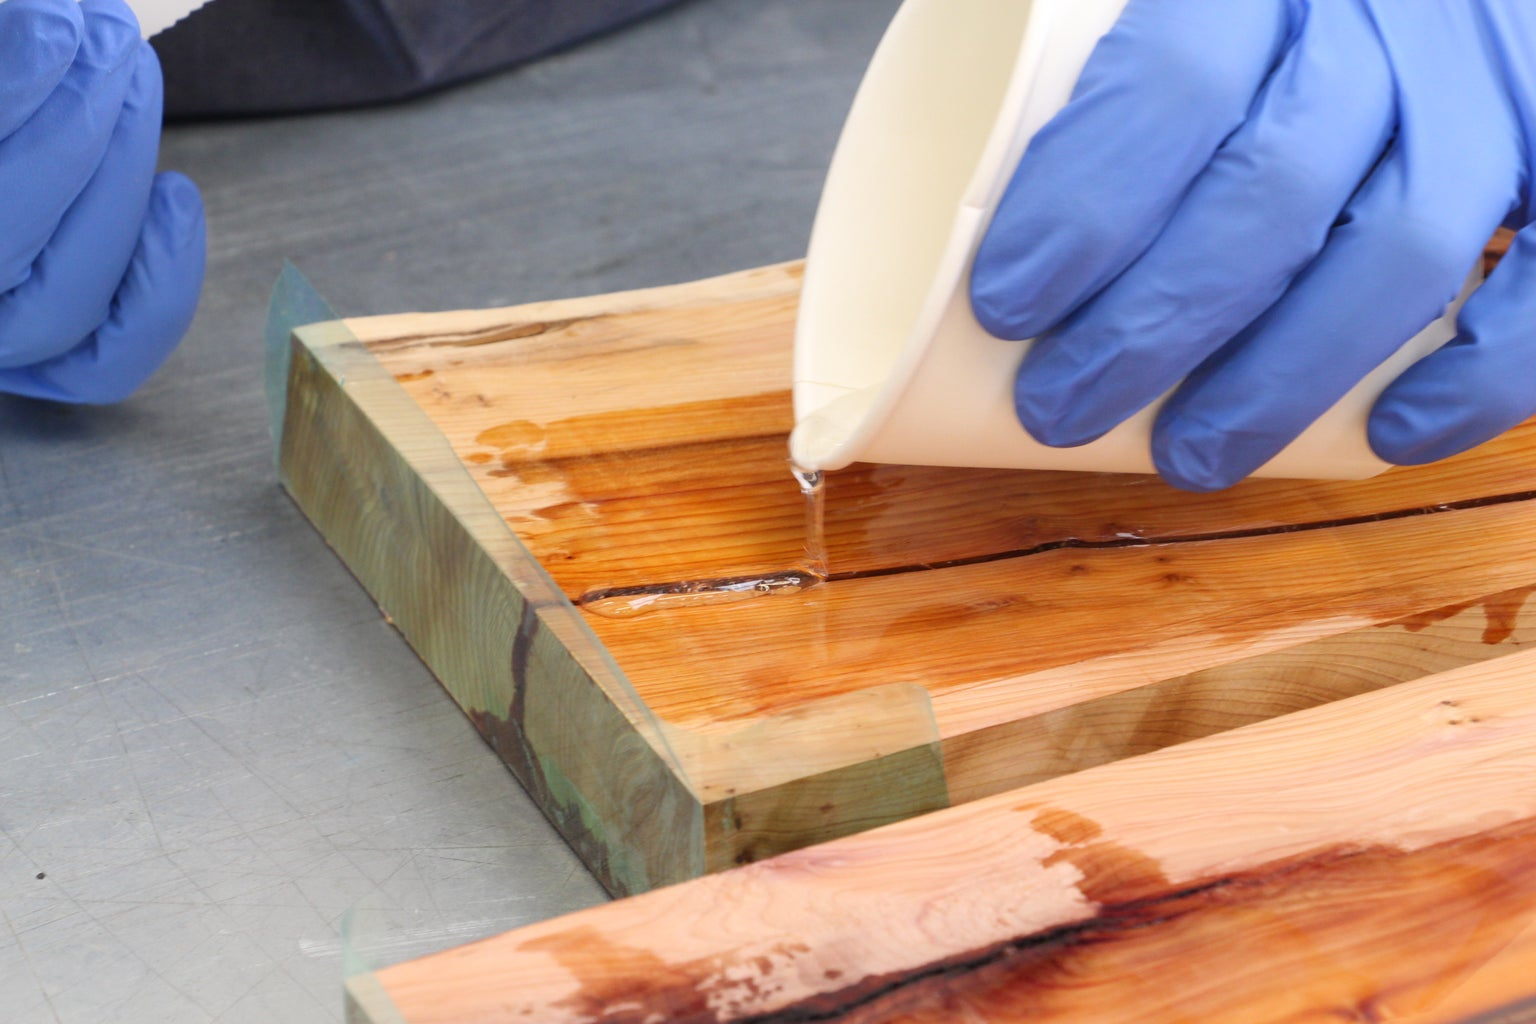 Sealing the Wood and Filling the Knots